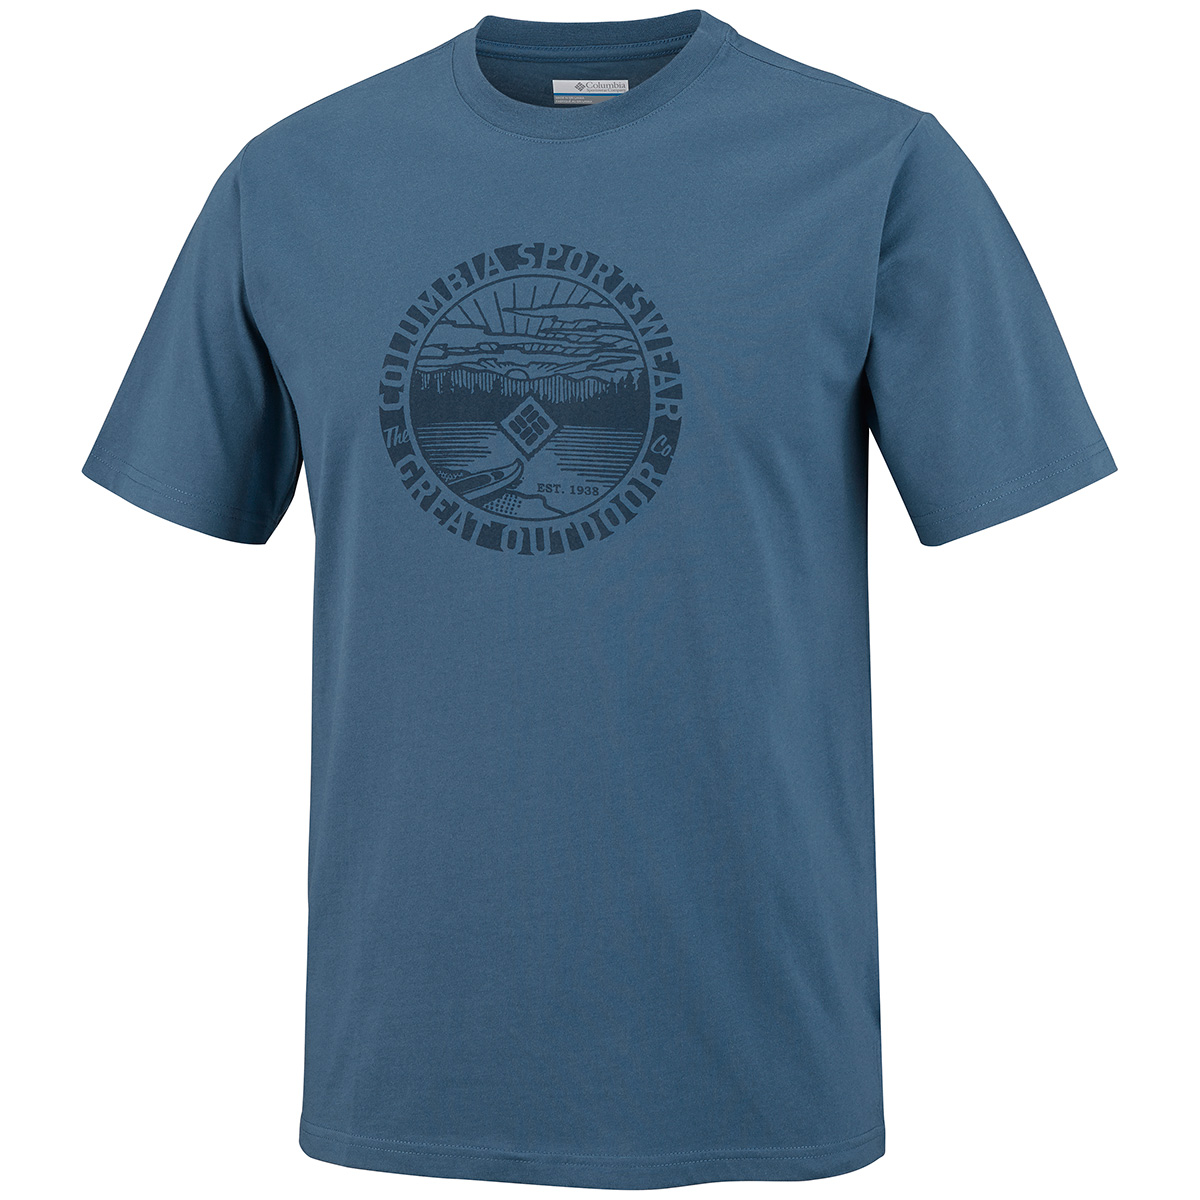 Columbia Outdoor Horizon II Short Sleeve Tee